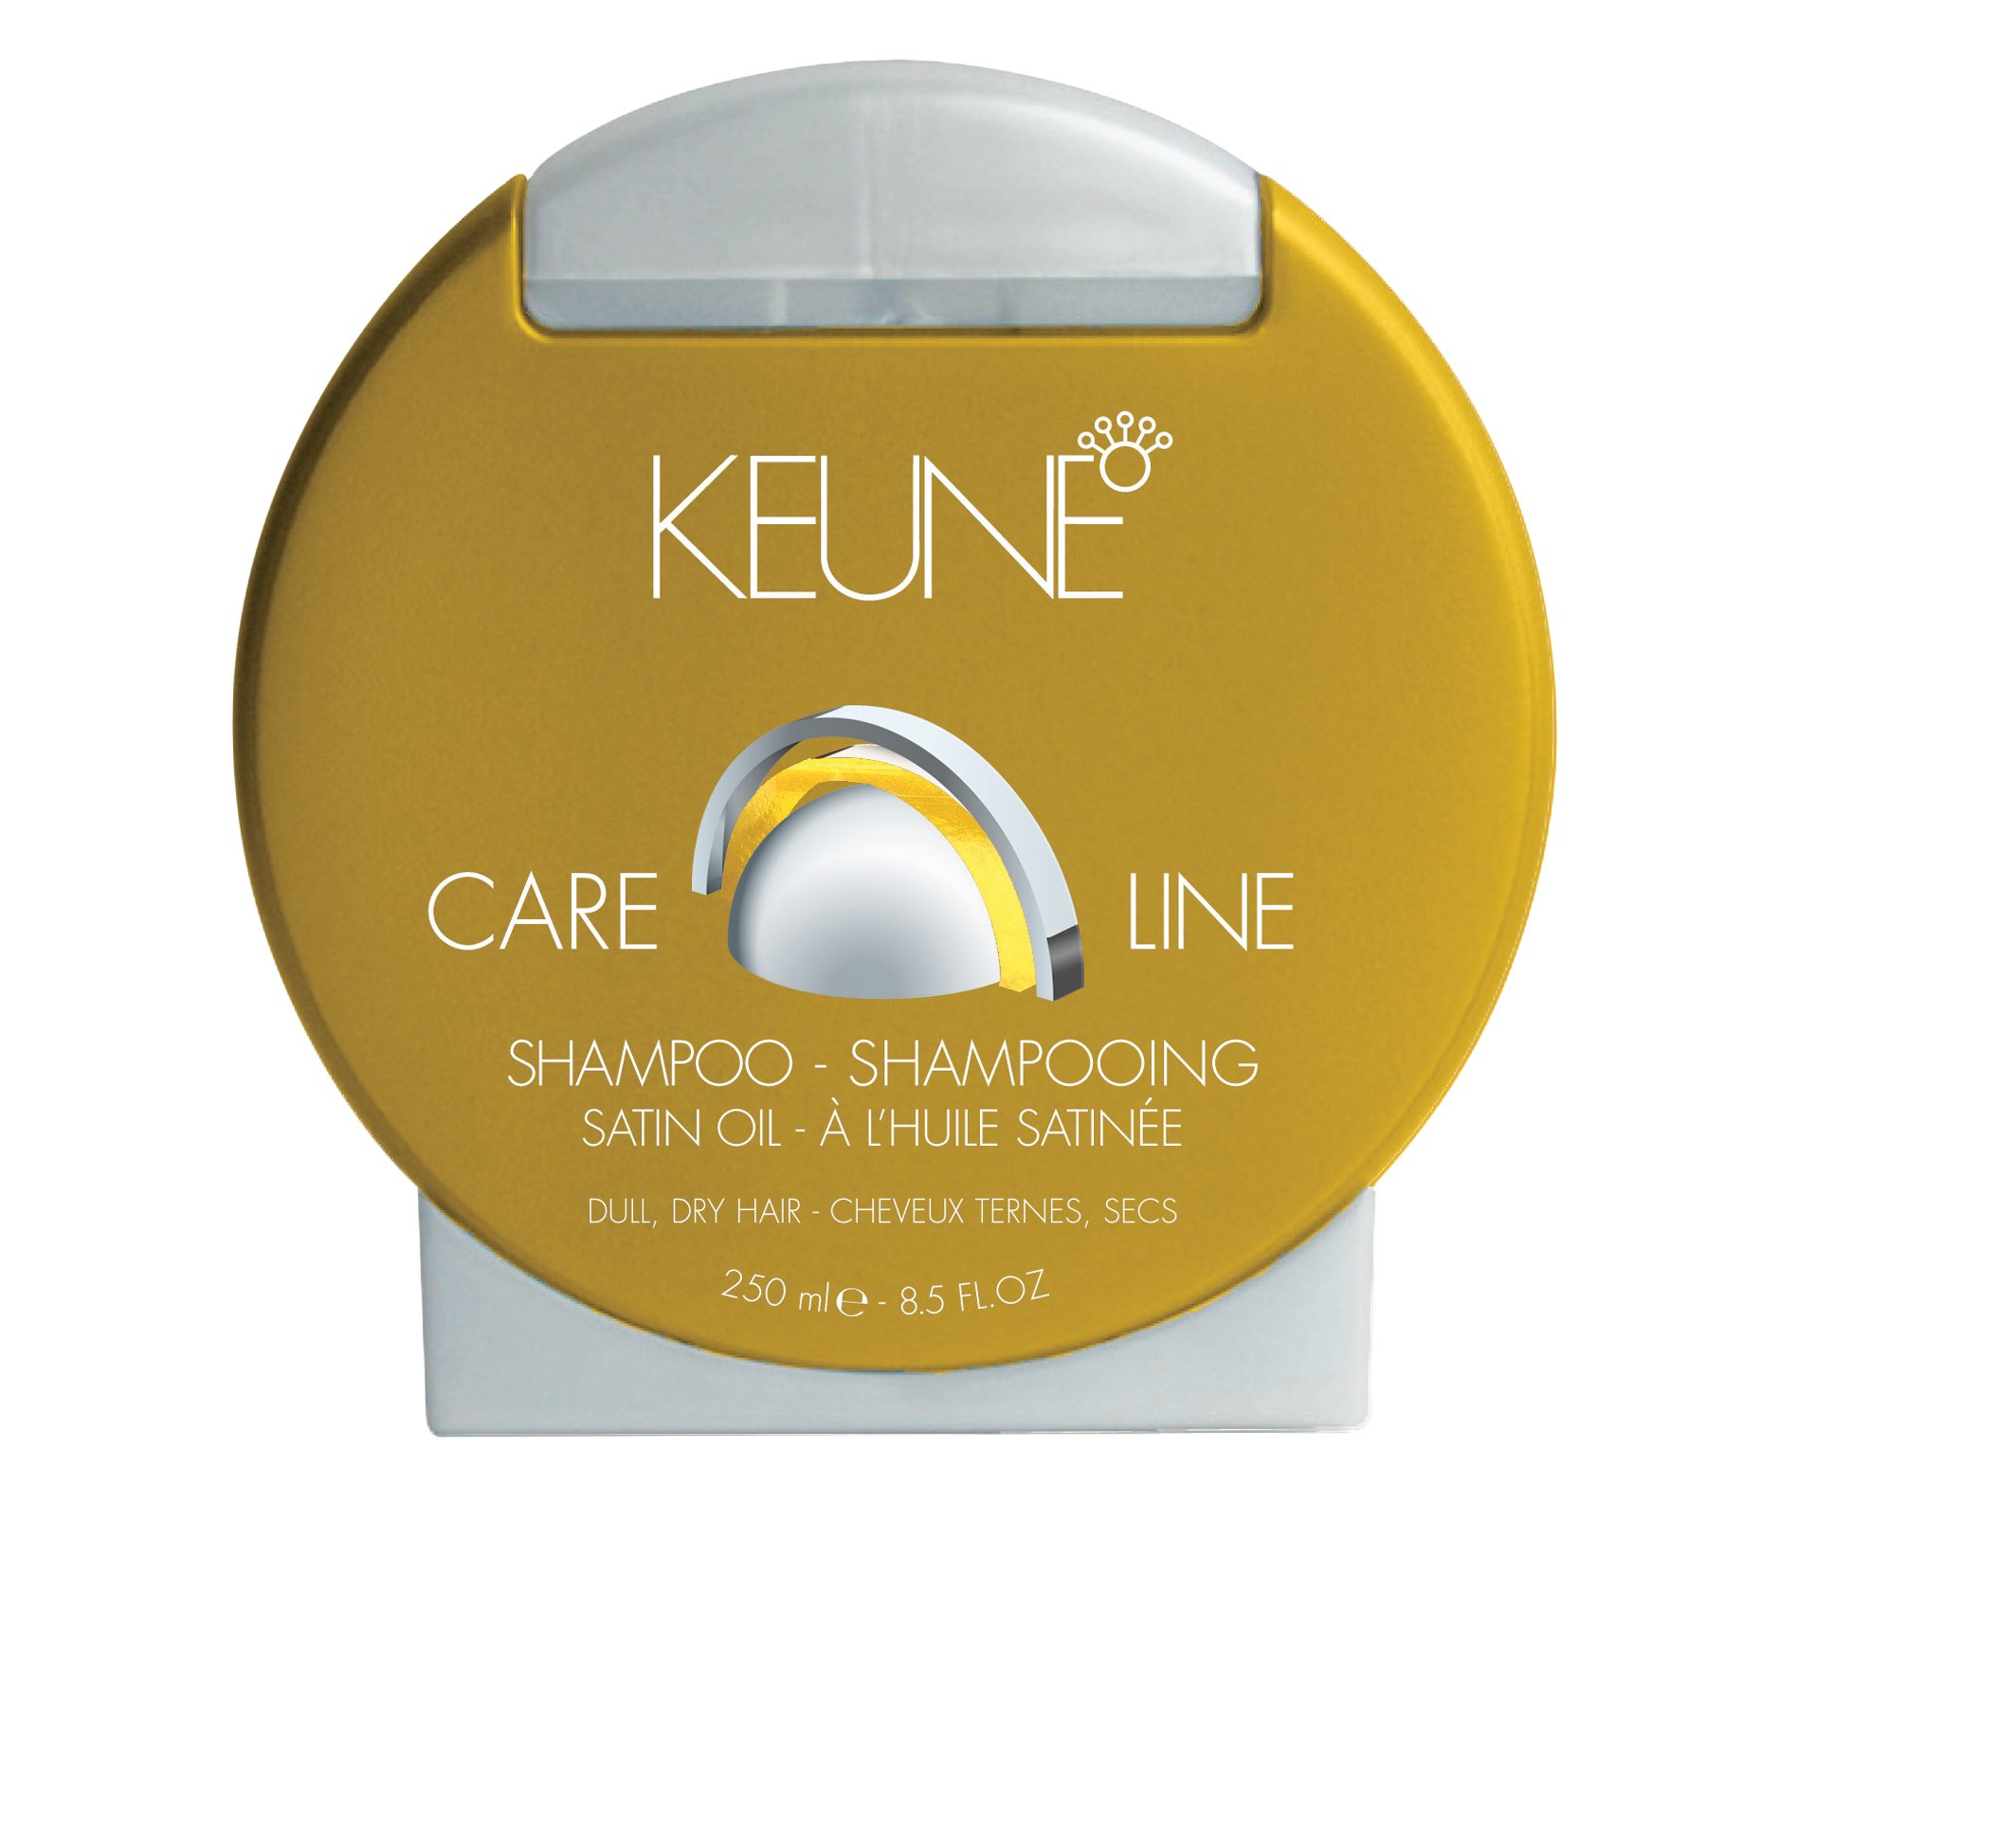 Keune  Care Line  Satin Oil Shampoo gives nourishment, softness and shine to the hair with Yangu, Monoi, sweet almond, and Maracuja oils, leaving hair healthy and fresh.